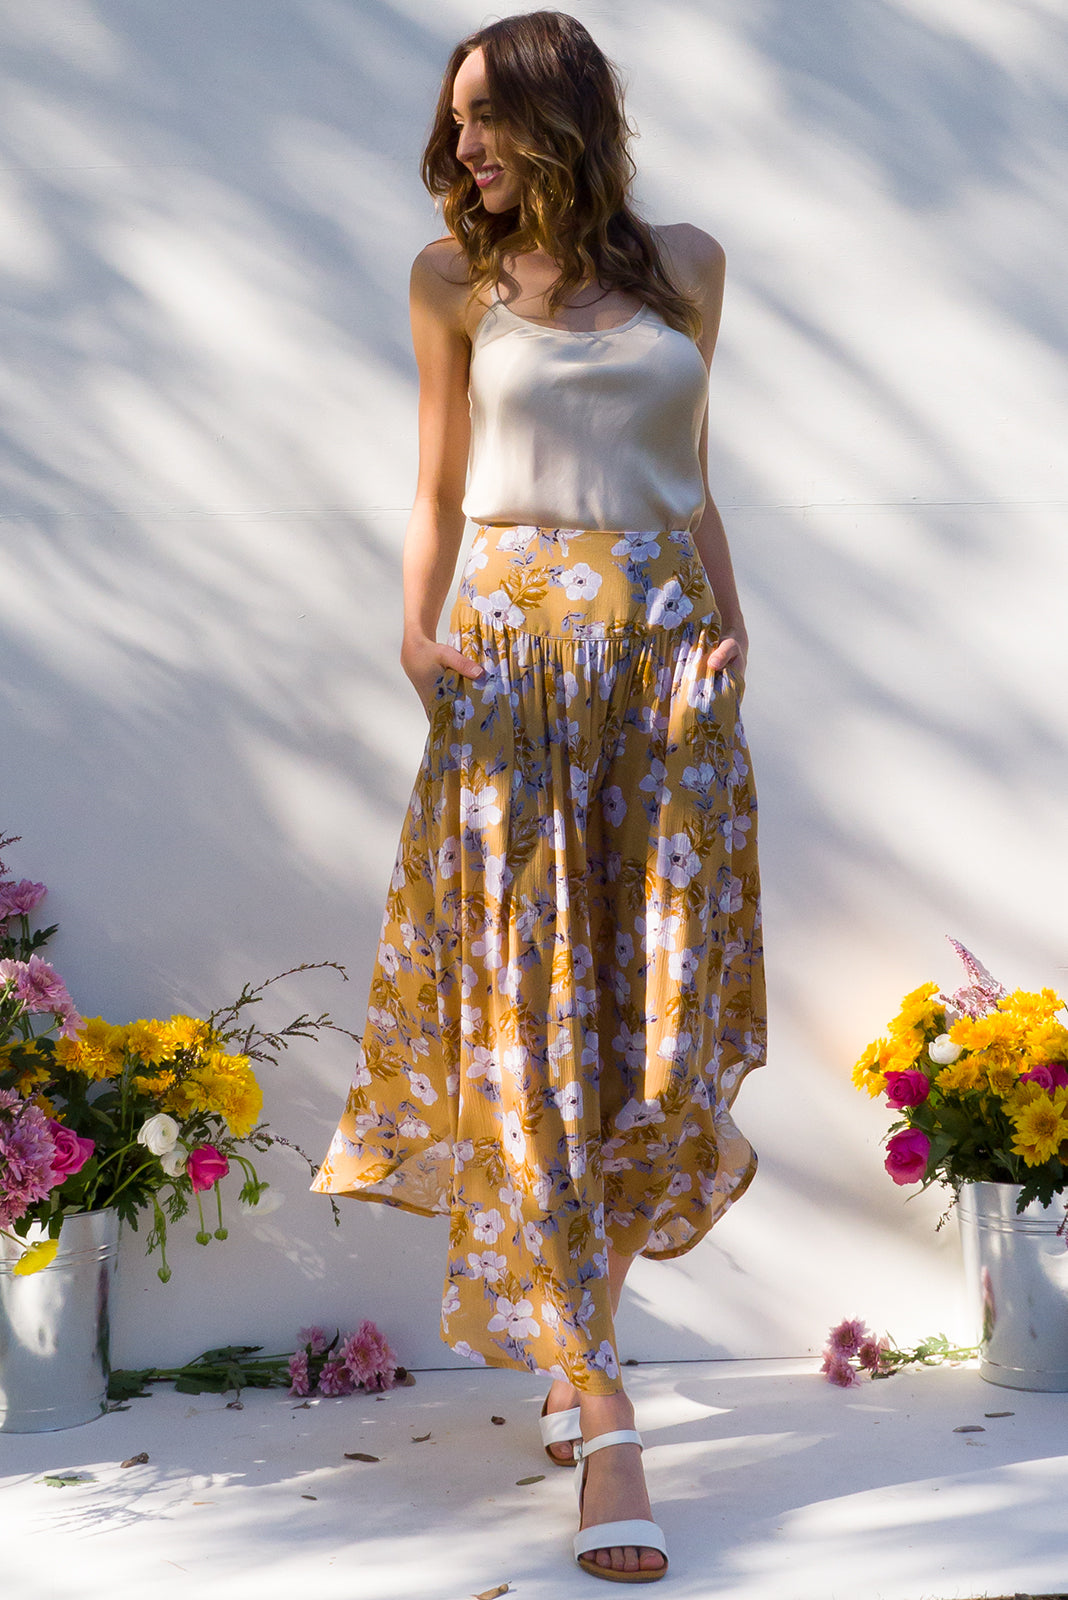 Laguna Maxi length Skirt with elastic back and front yoke in a warm caramel and lilac floral print